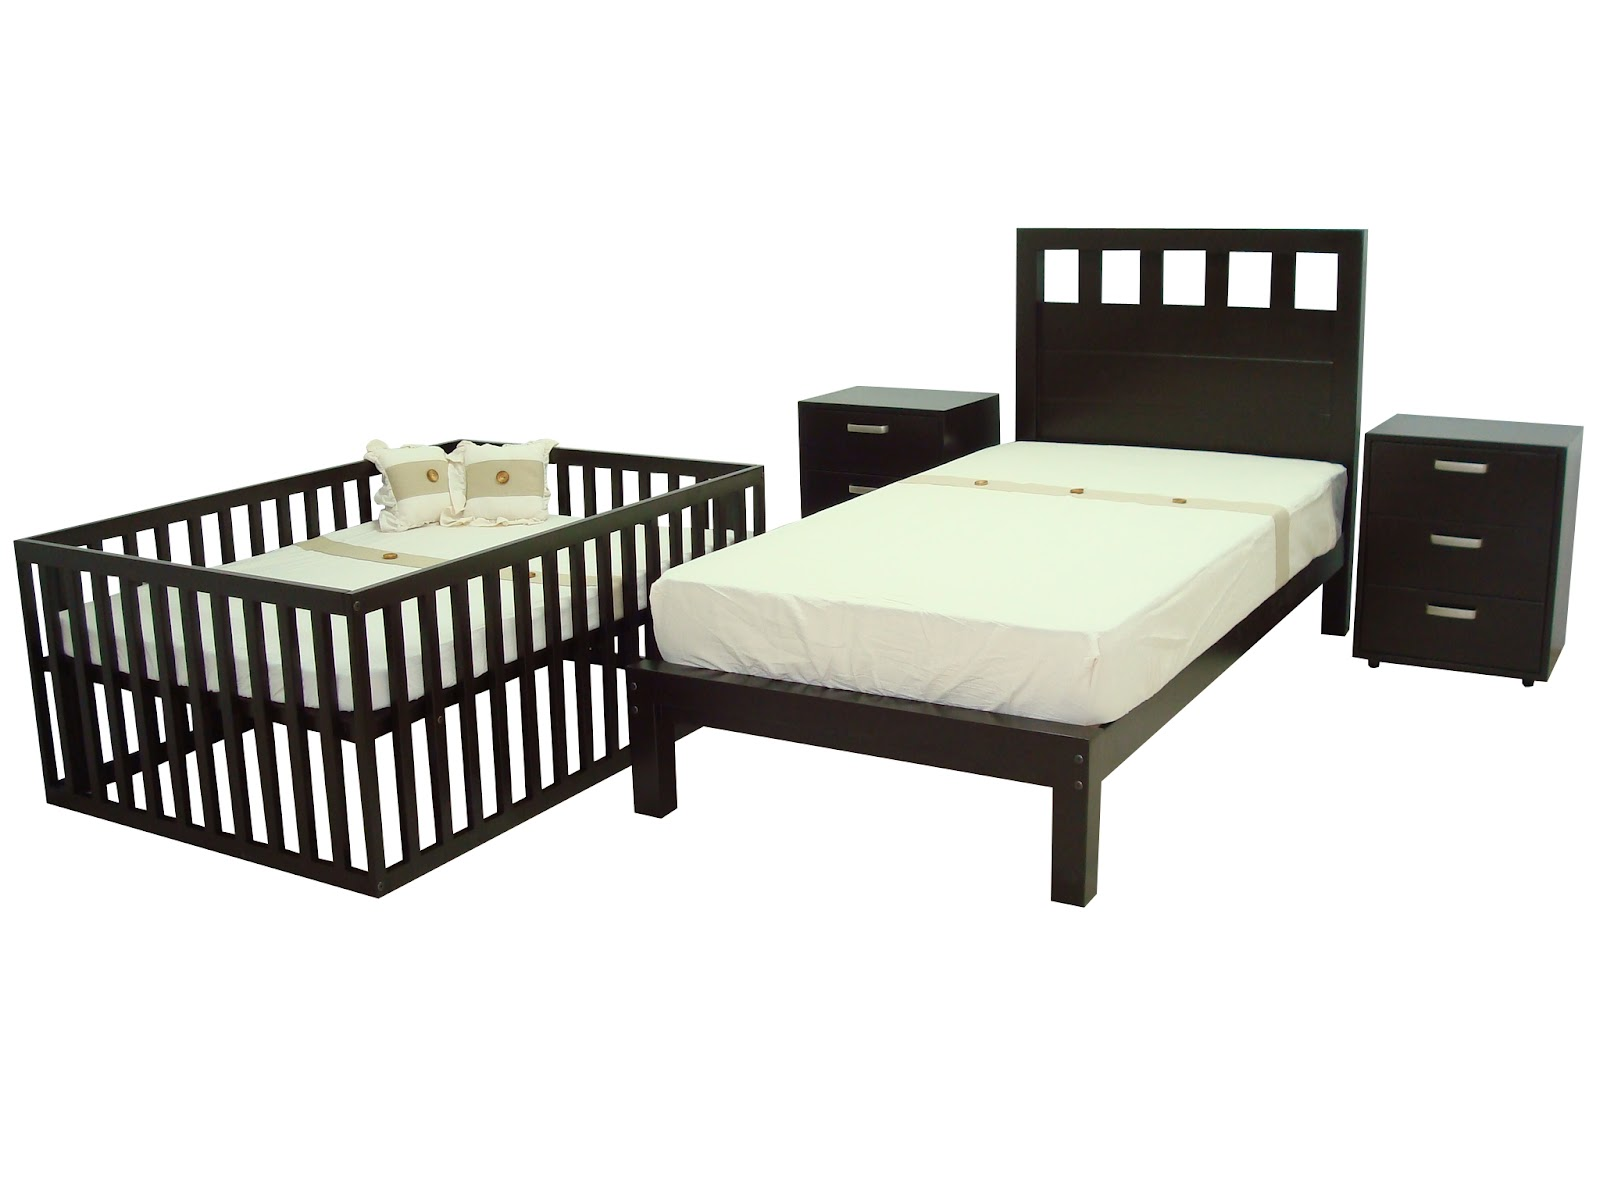 ASHANTI KIDS CAMAS CUNA TRANSFORMABLES